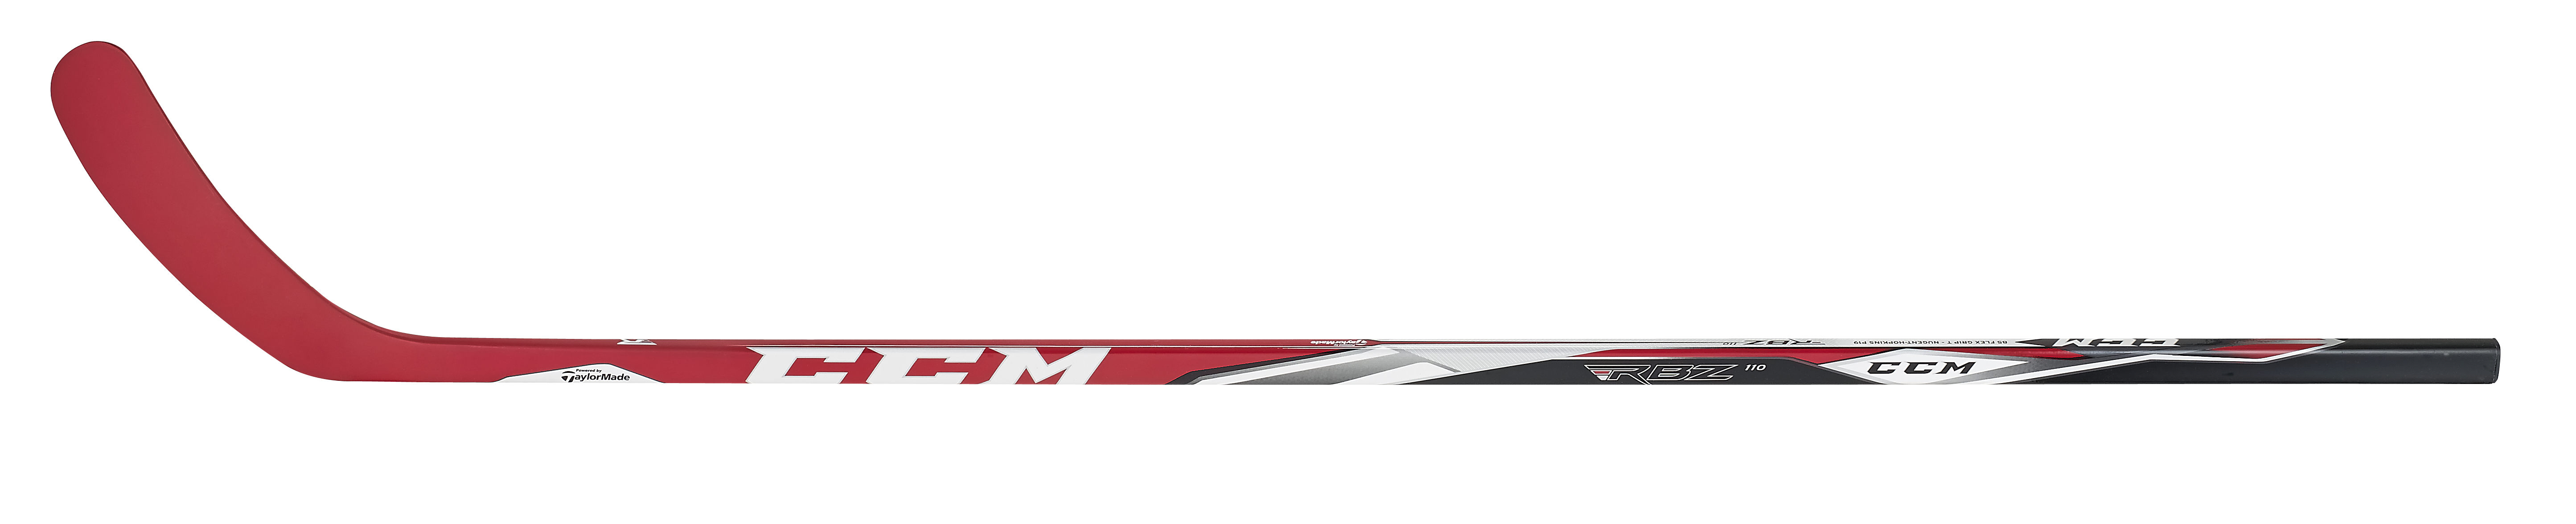 Hockey clipart bat. Png images free download